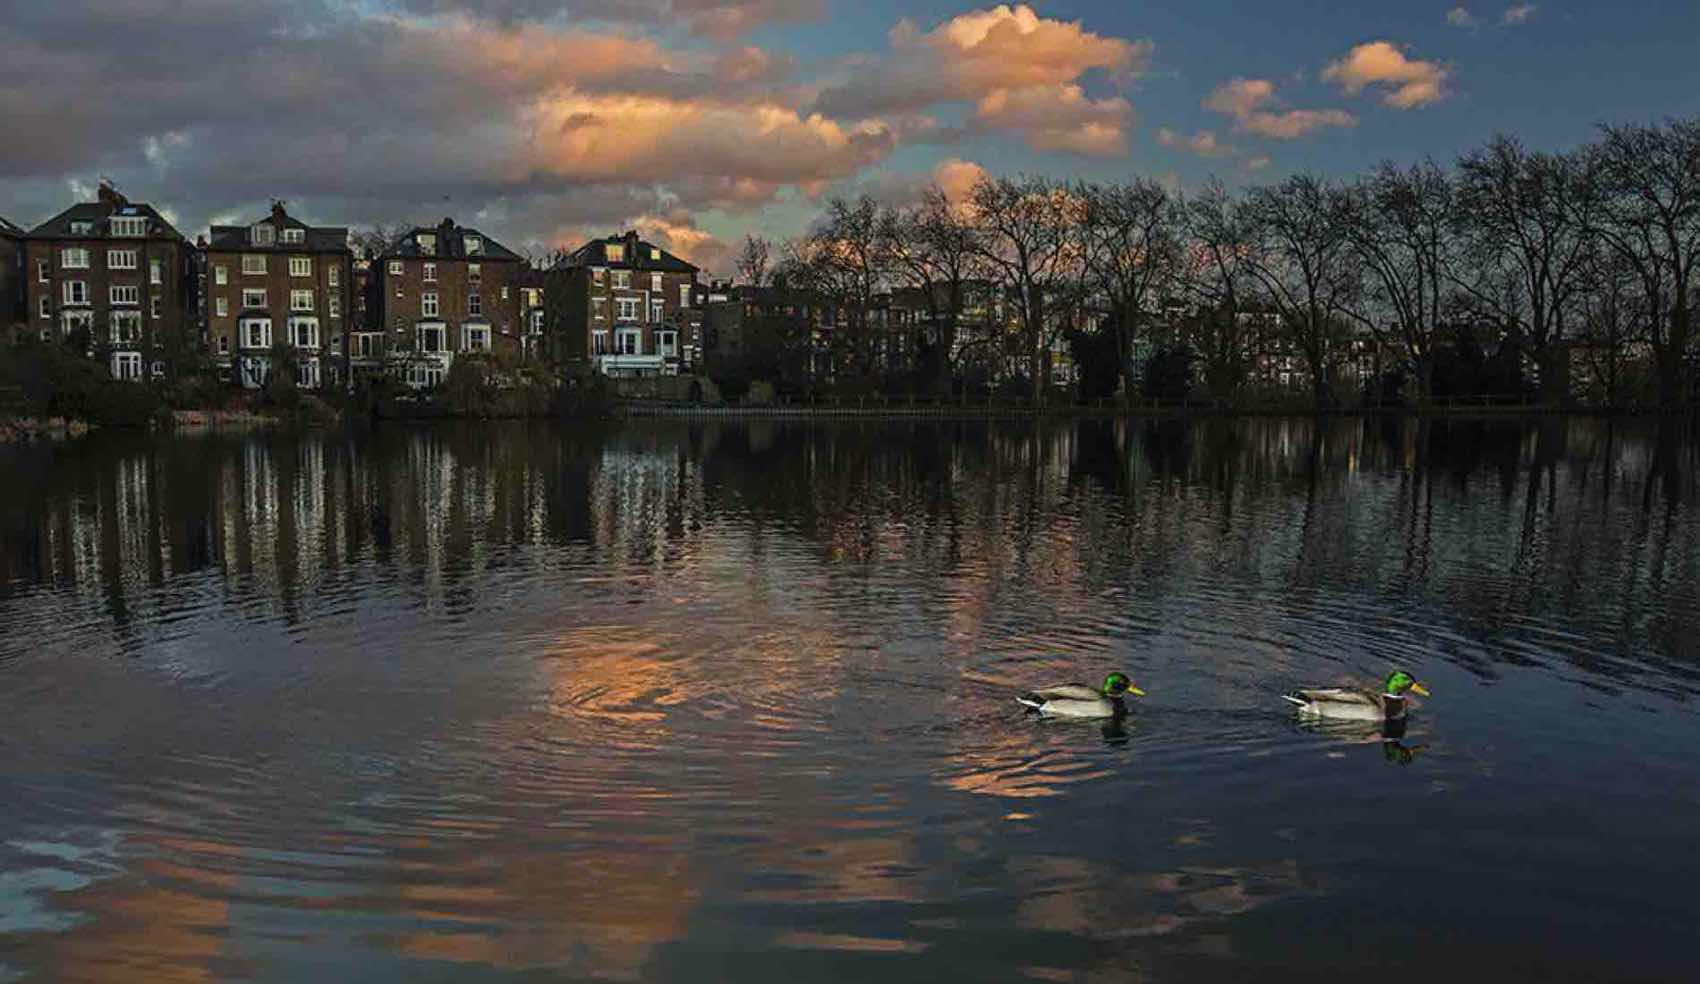 A Pond at Hampstead Heath in North London